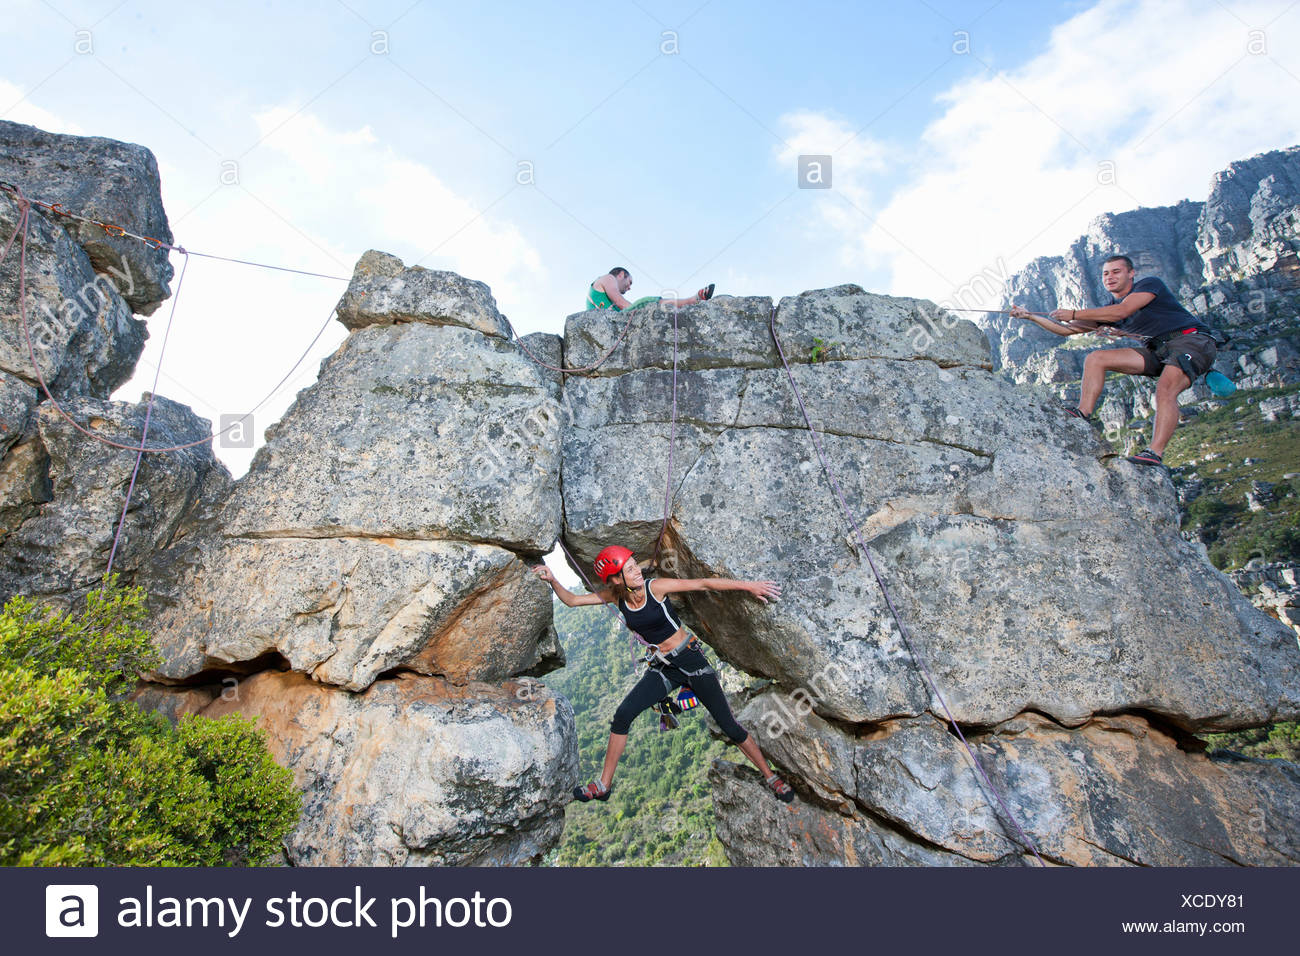 Three rock climbers climbing up rock formation - Stock Image